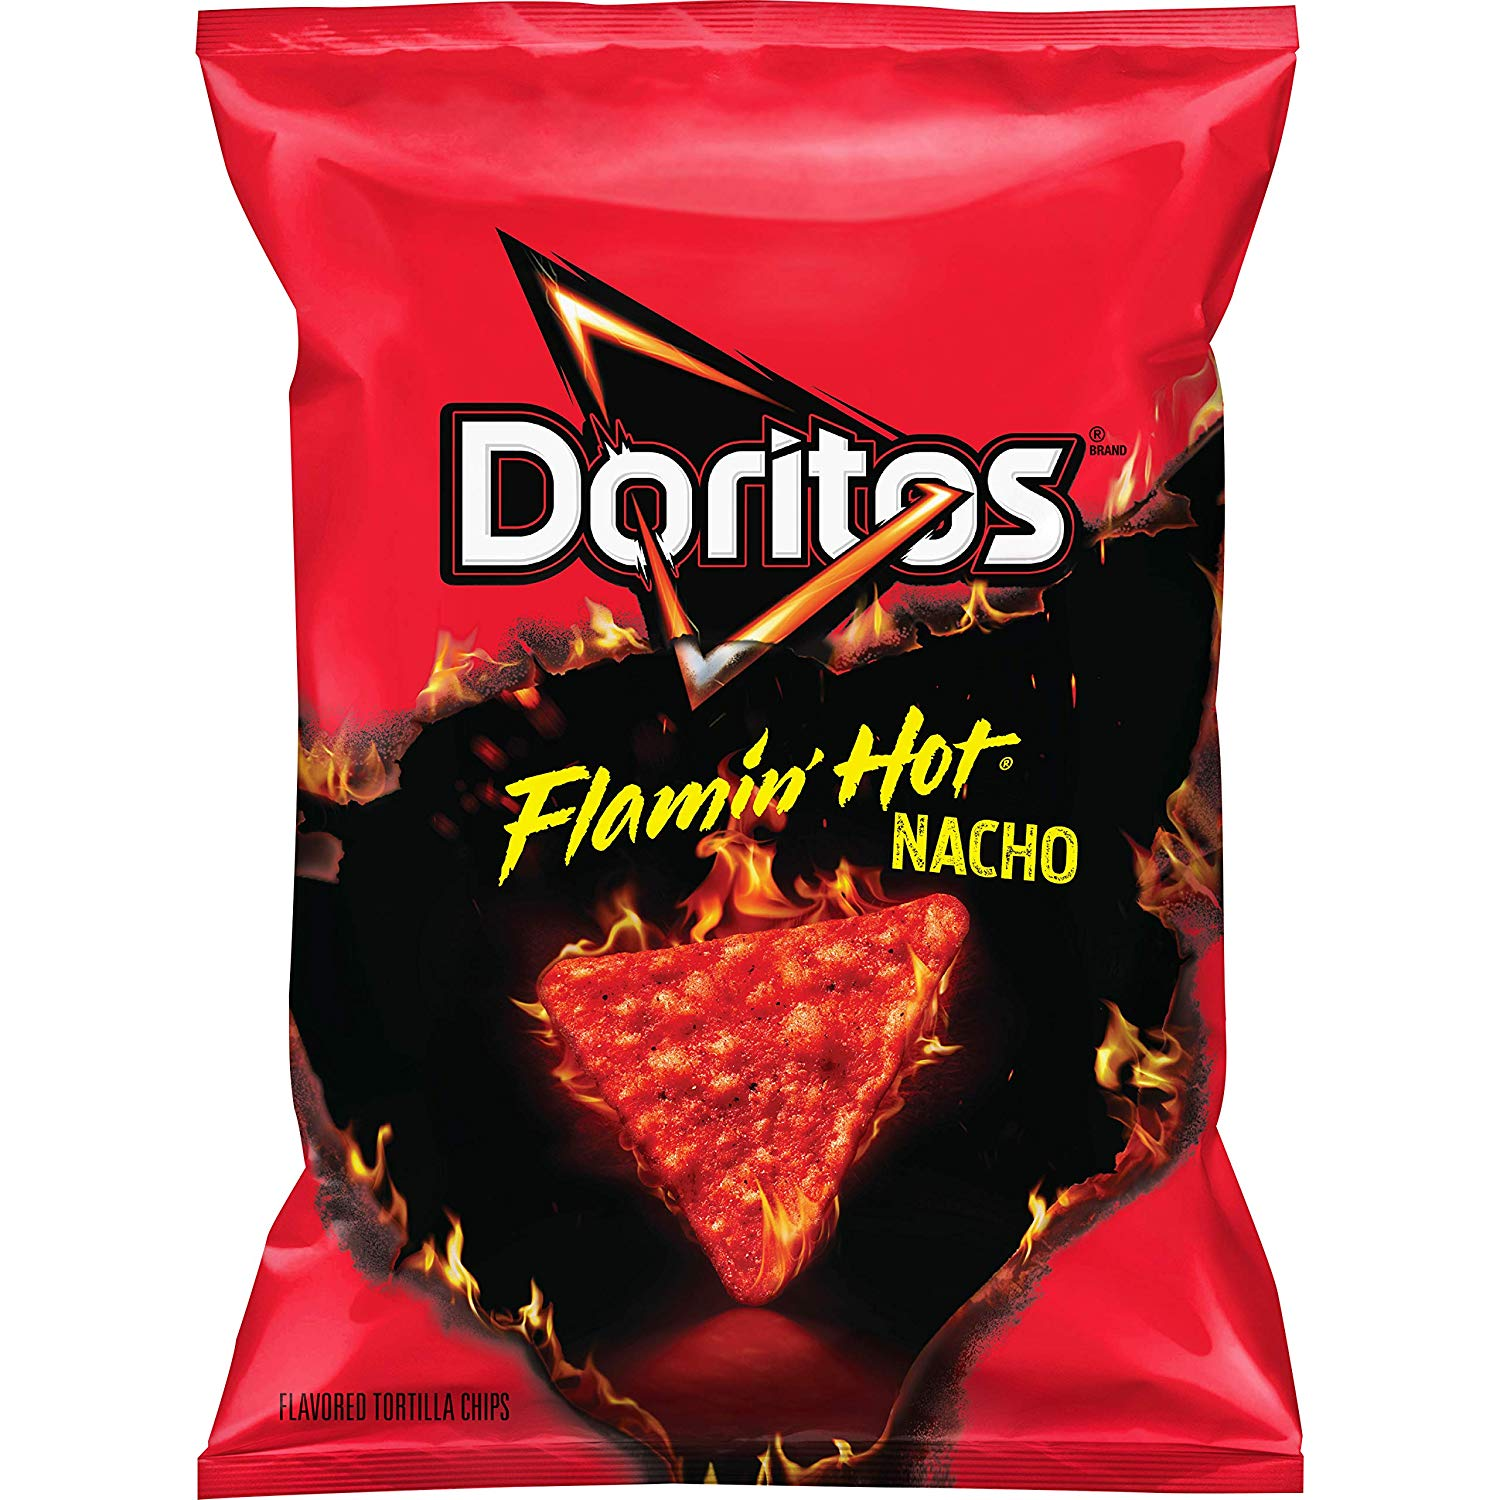 Prime Pantry: Up to 30% Off Frito Lay